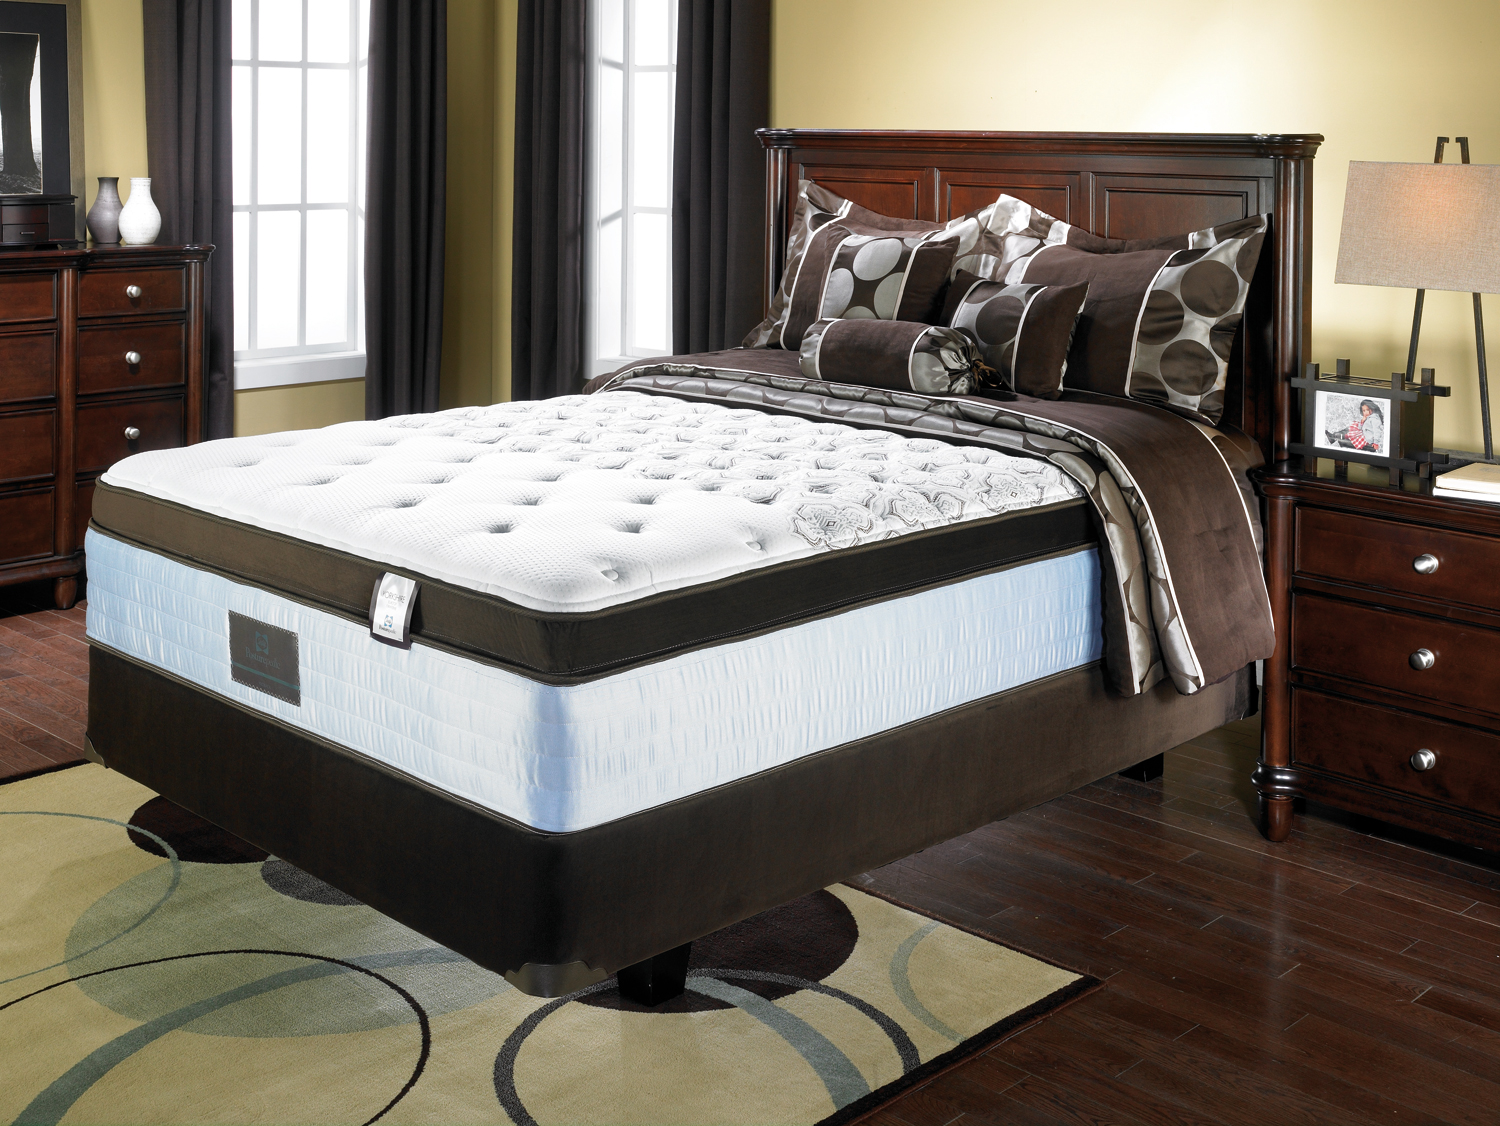 New Queen Mattress And Boxspring Set